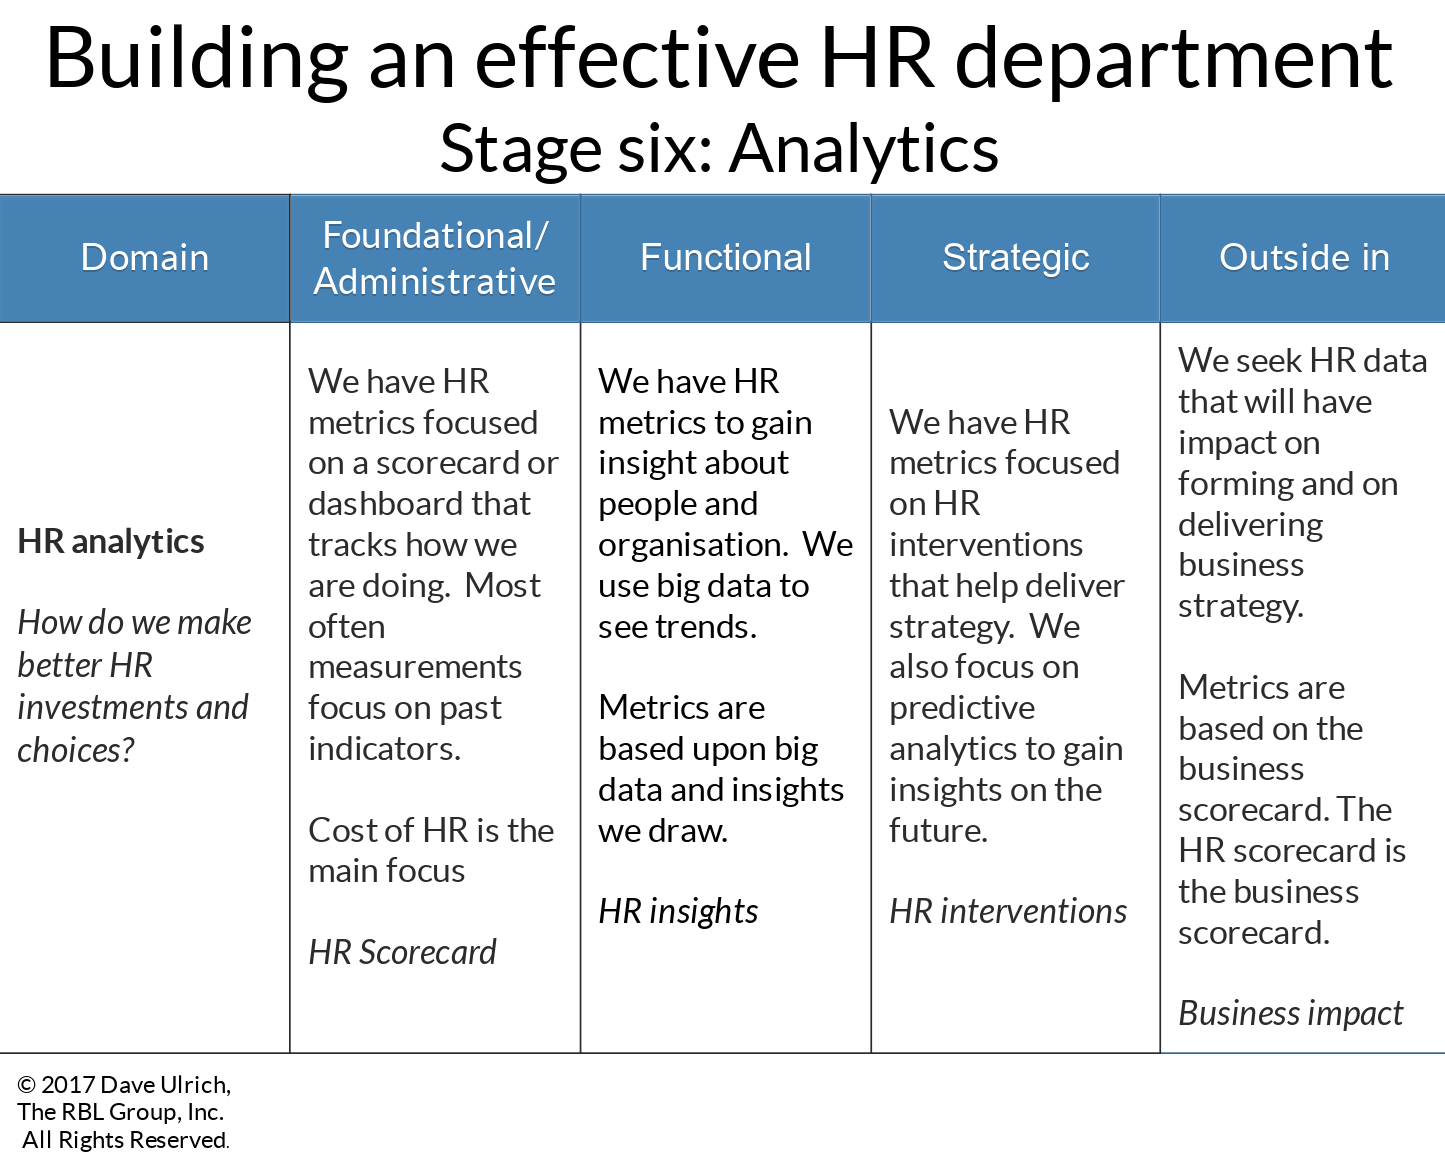 Building an effective HR department stage six